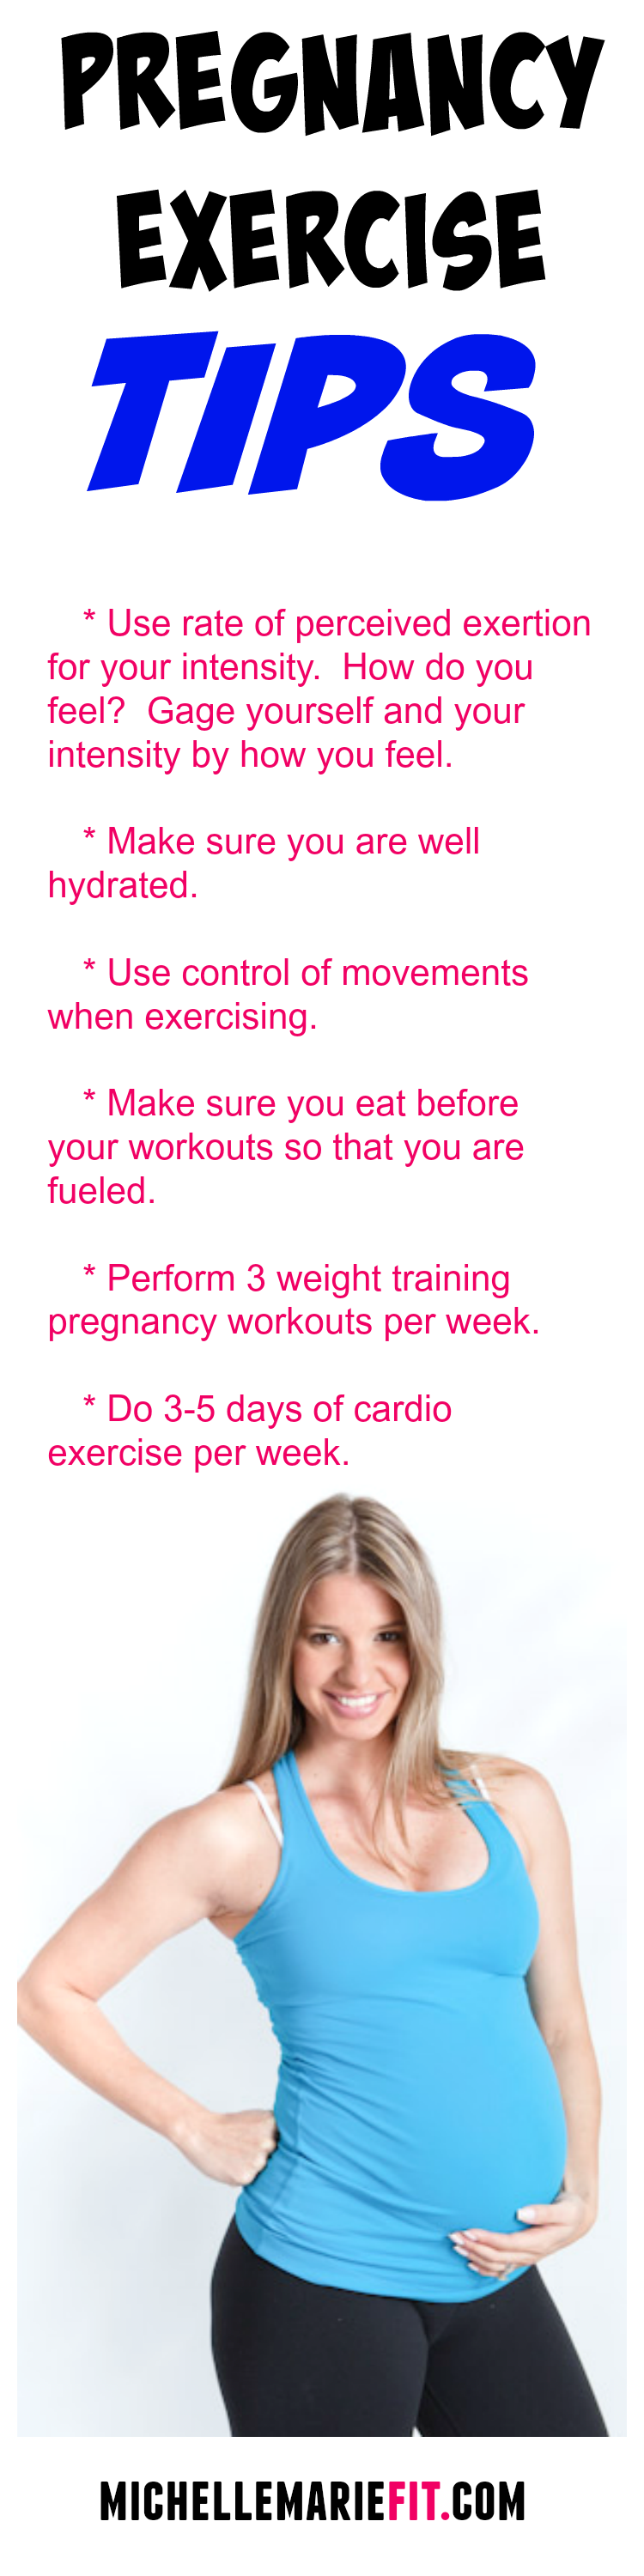 Exercise During Pregnancy With Workouts Like This ...